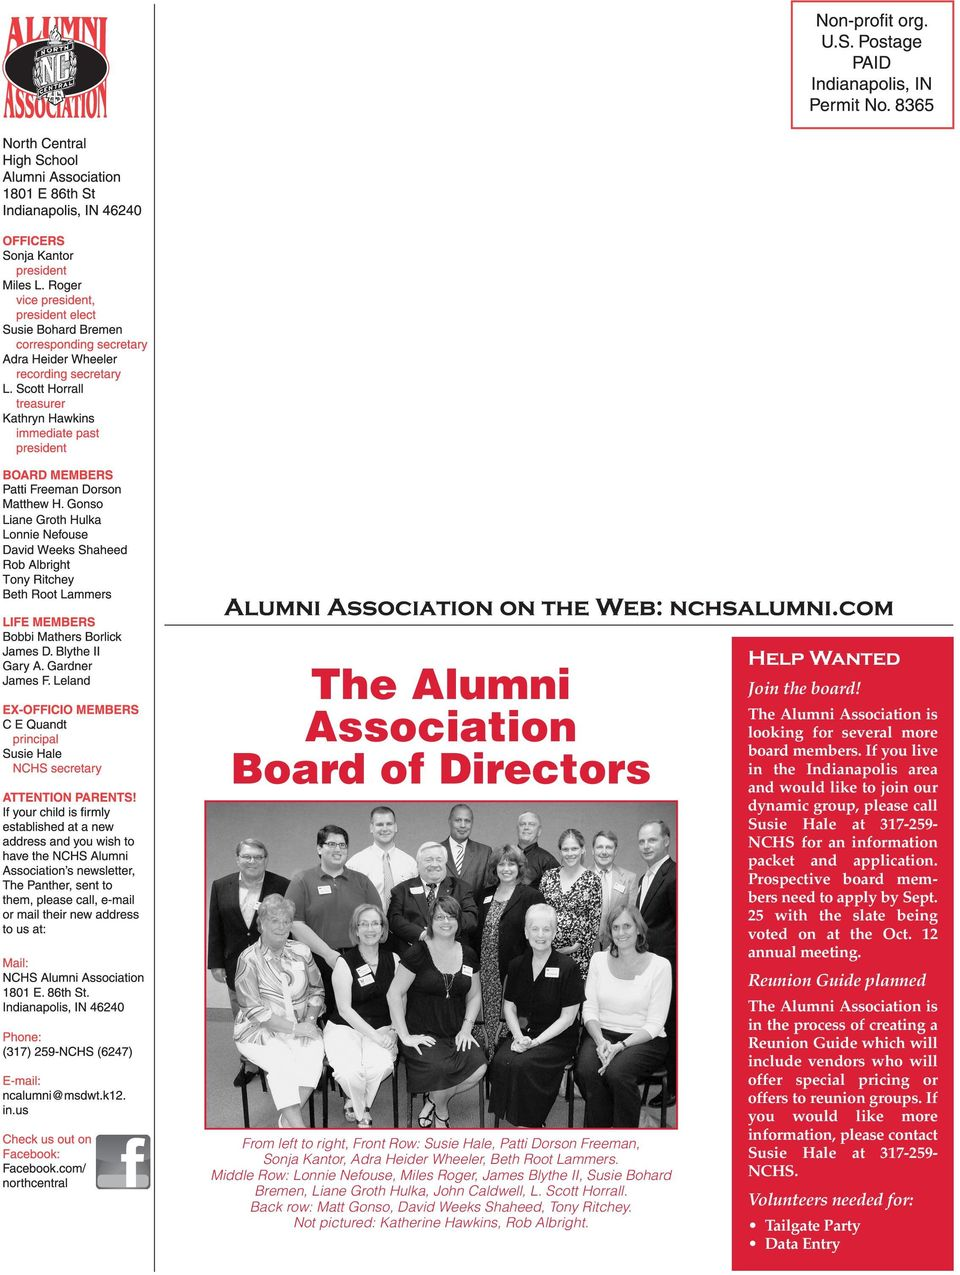 Not pictured: Katherine Hawkins, Rob Albright. Help Wanted Join the board! The Alumni Association is looking for several more board members.